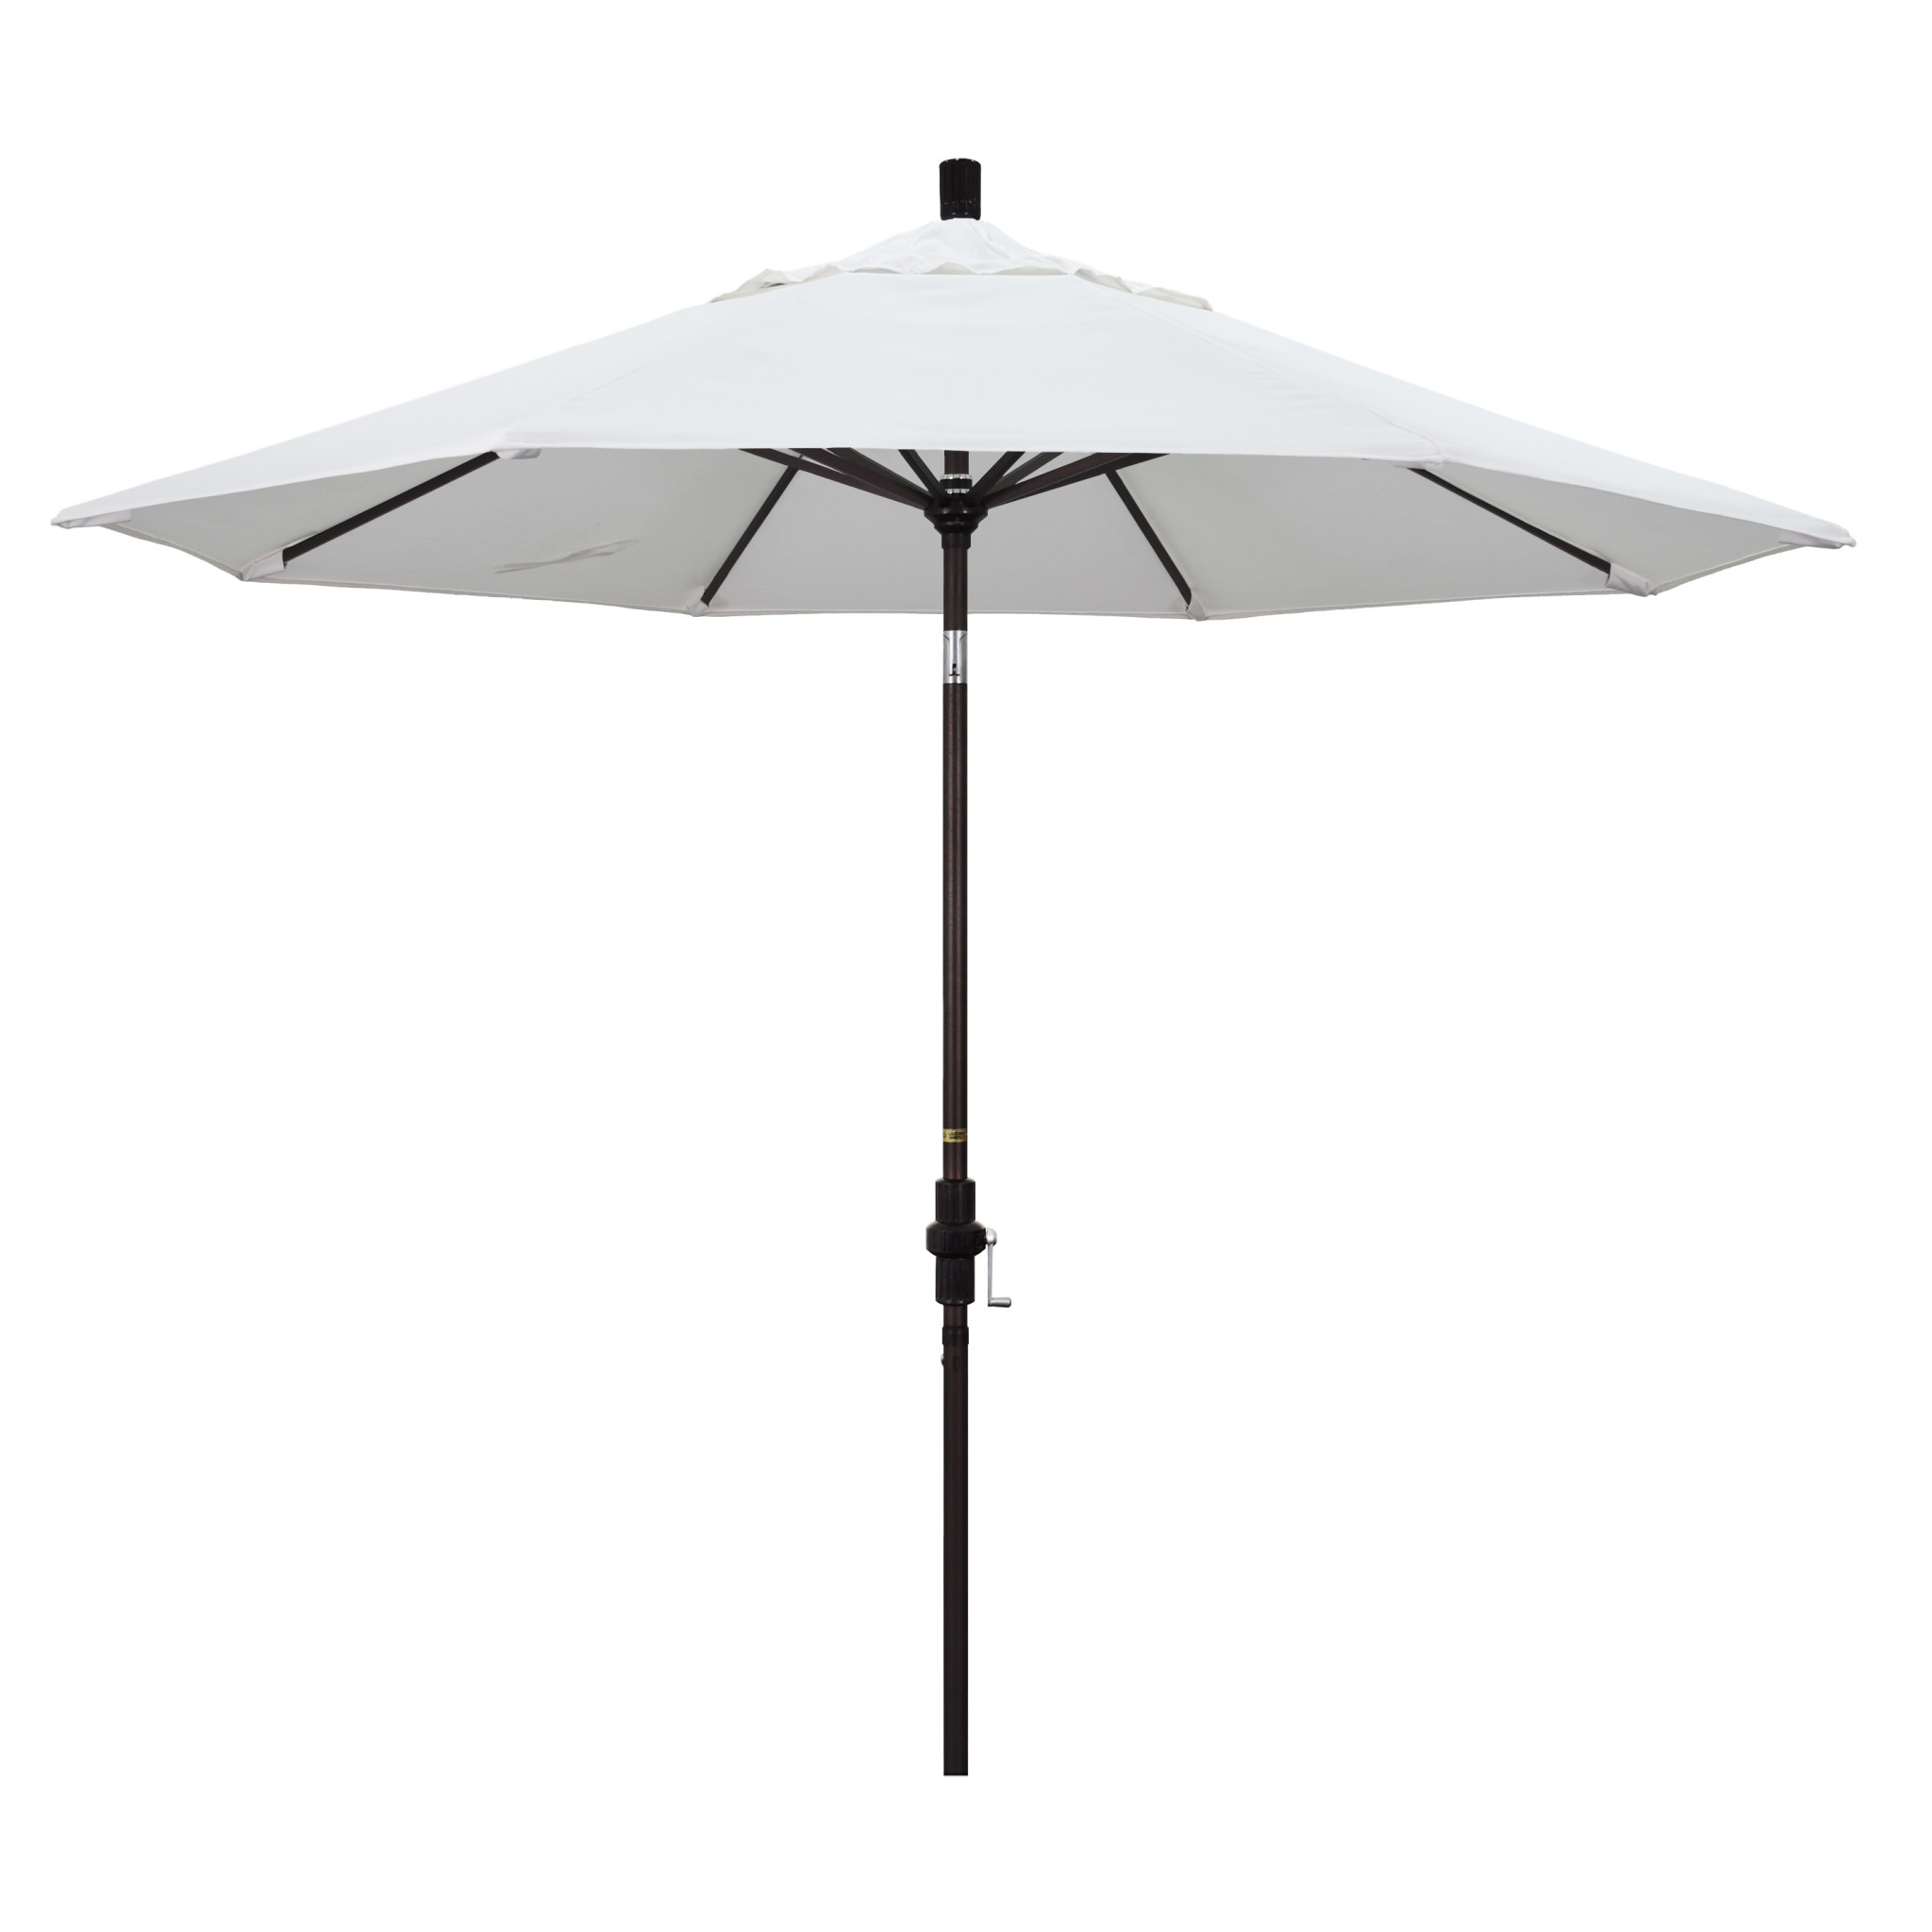 California Umbrella 9' Collar Tilt - Olefin White